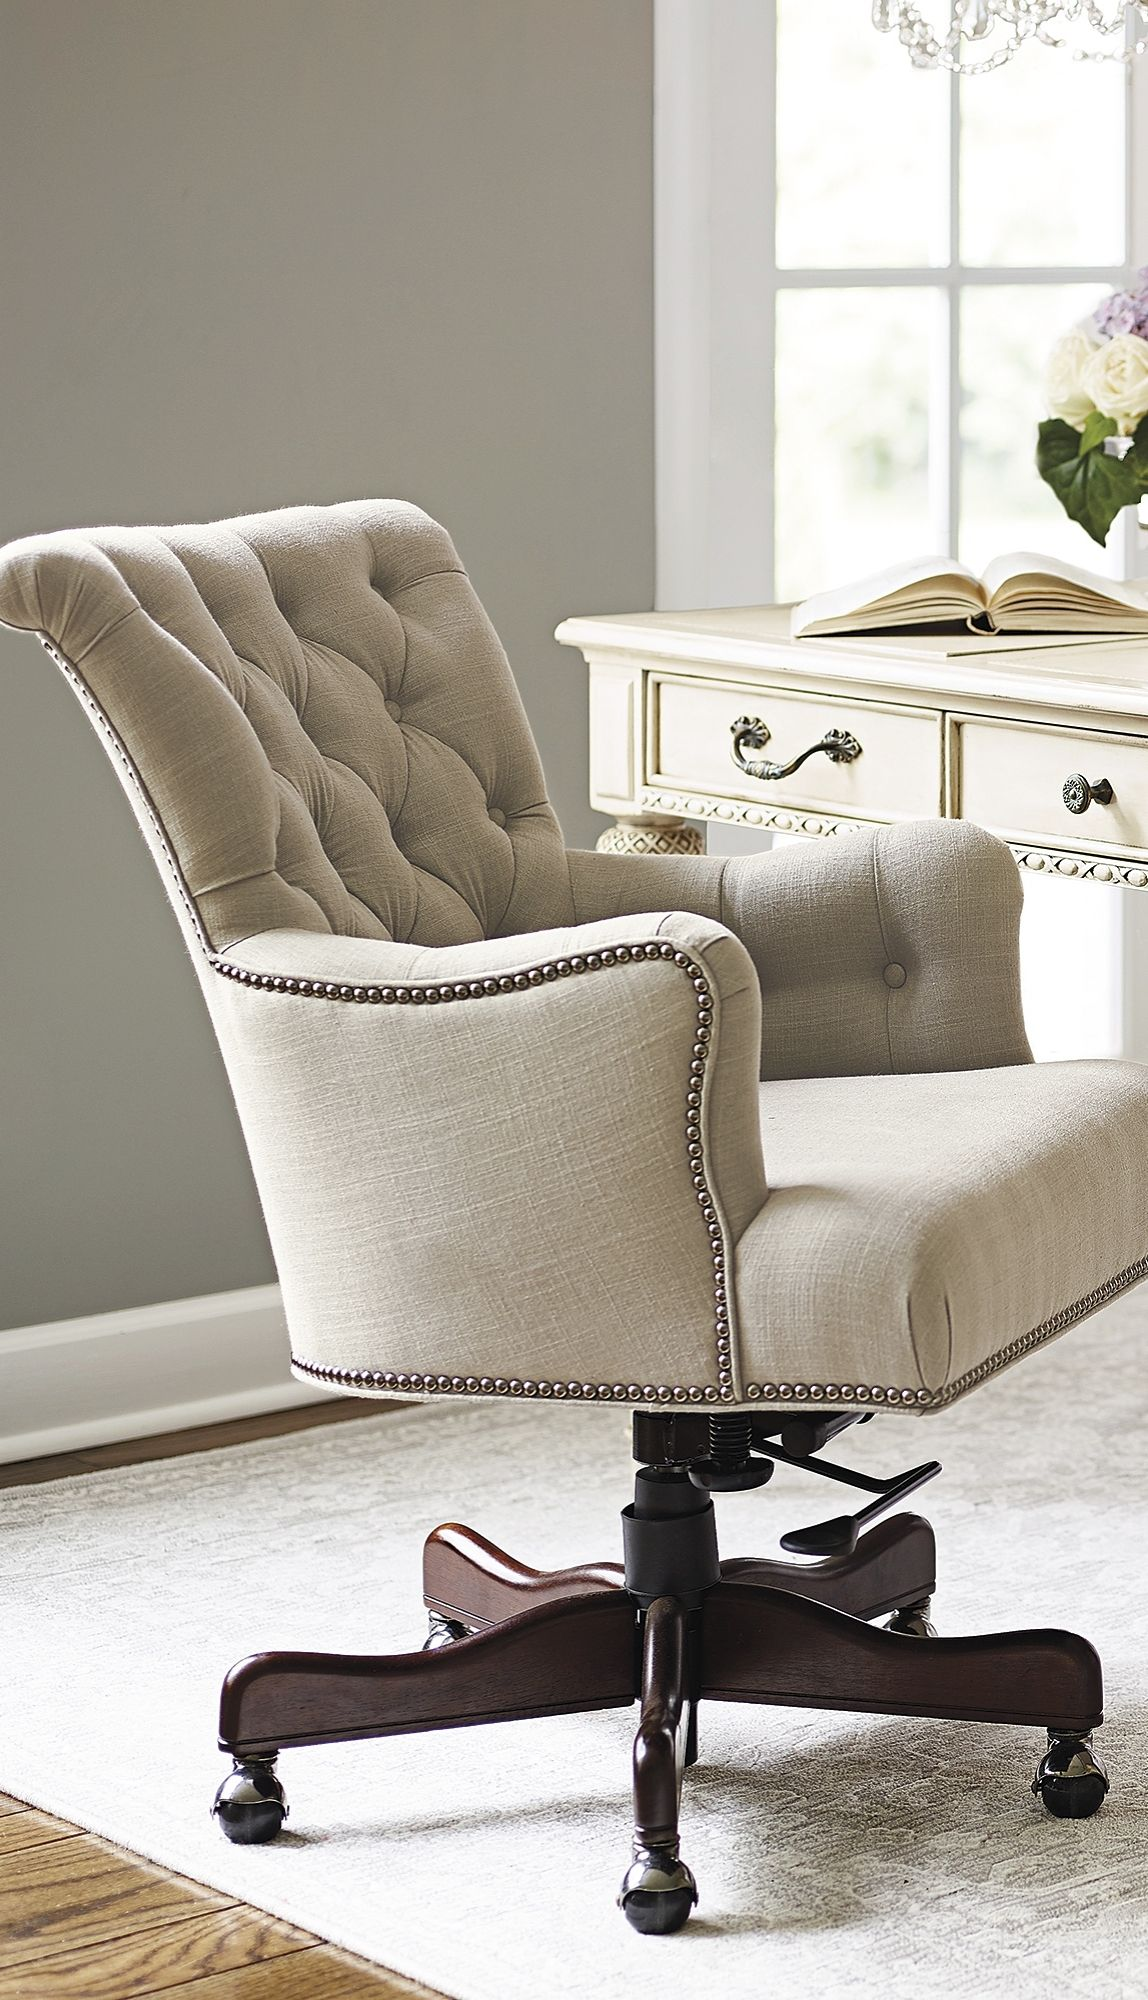 button tufted linen accented with silver nailhead trim defines the elegant averly desk chair  [ 1148 x 2000 Pixel ]